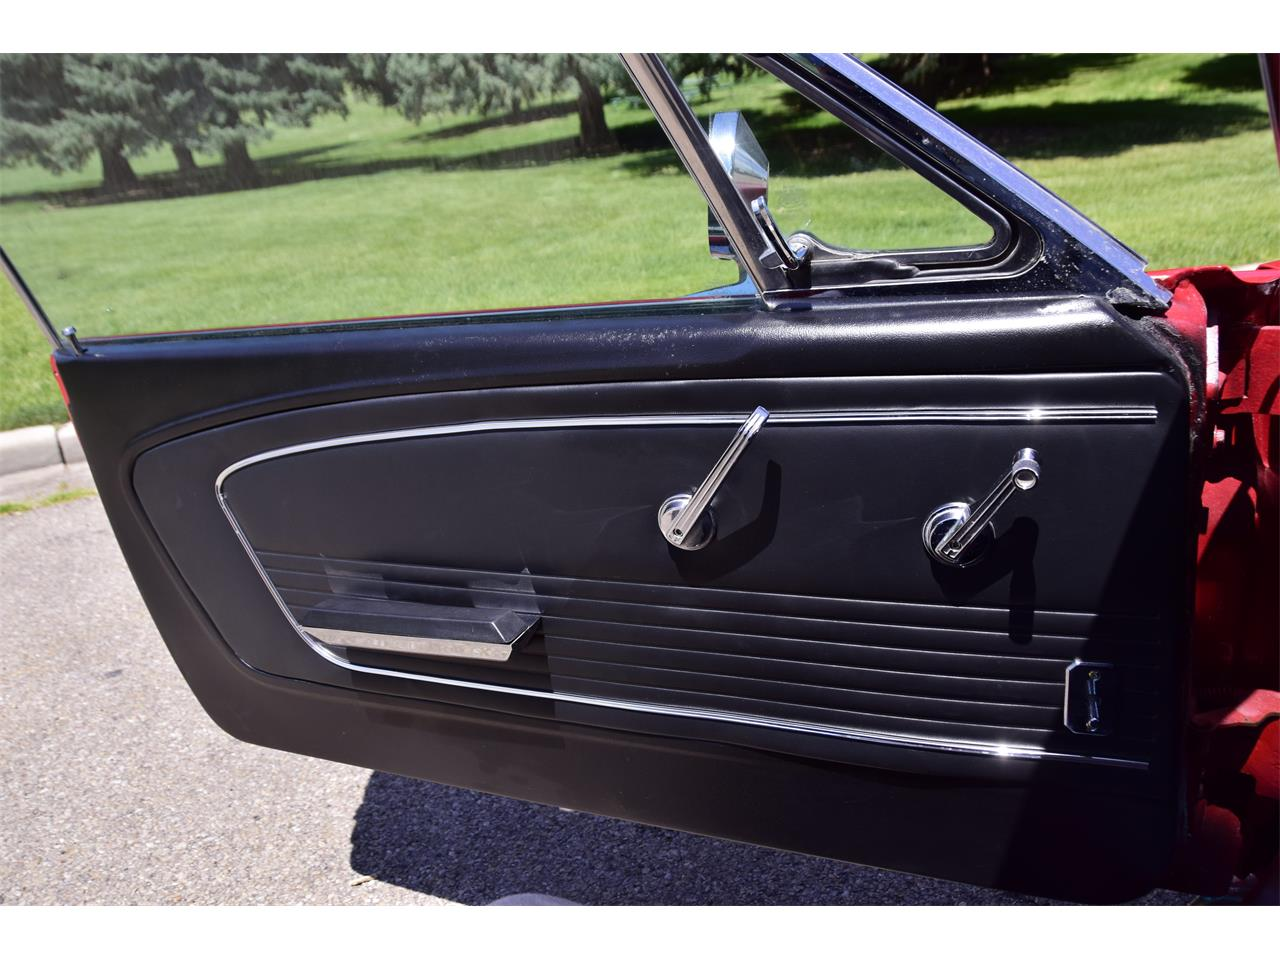 Large Picture of Classic '66 Mustang located in Utah Offered by a Private Seller - QPZ1